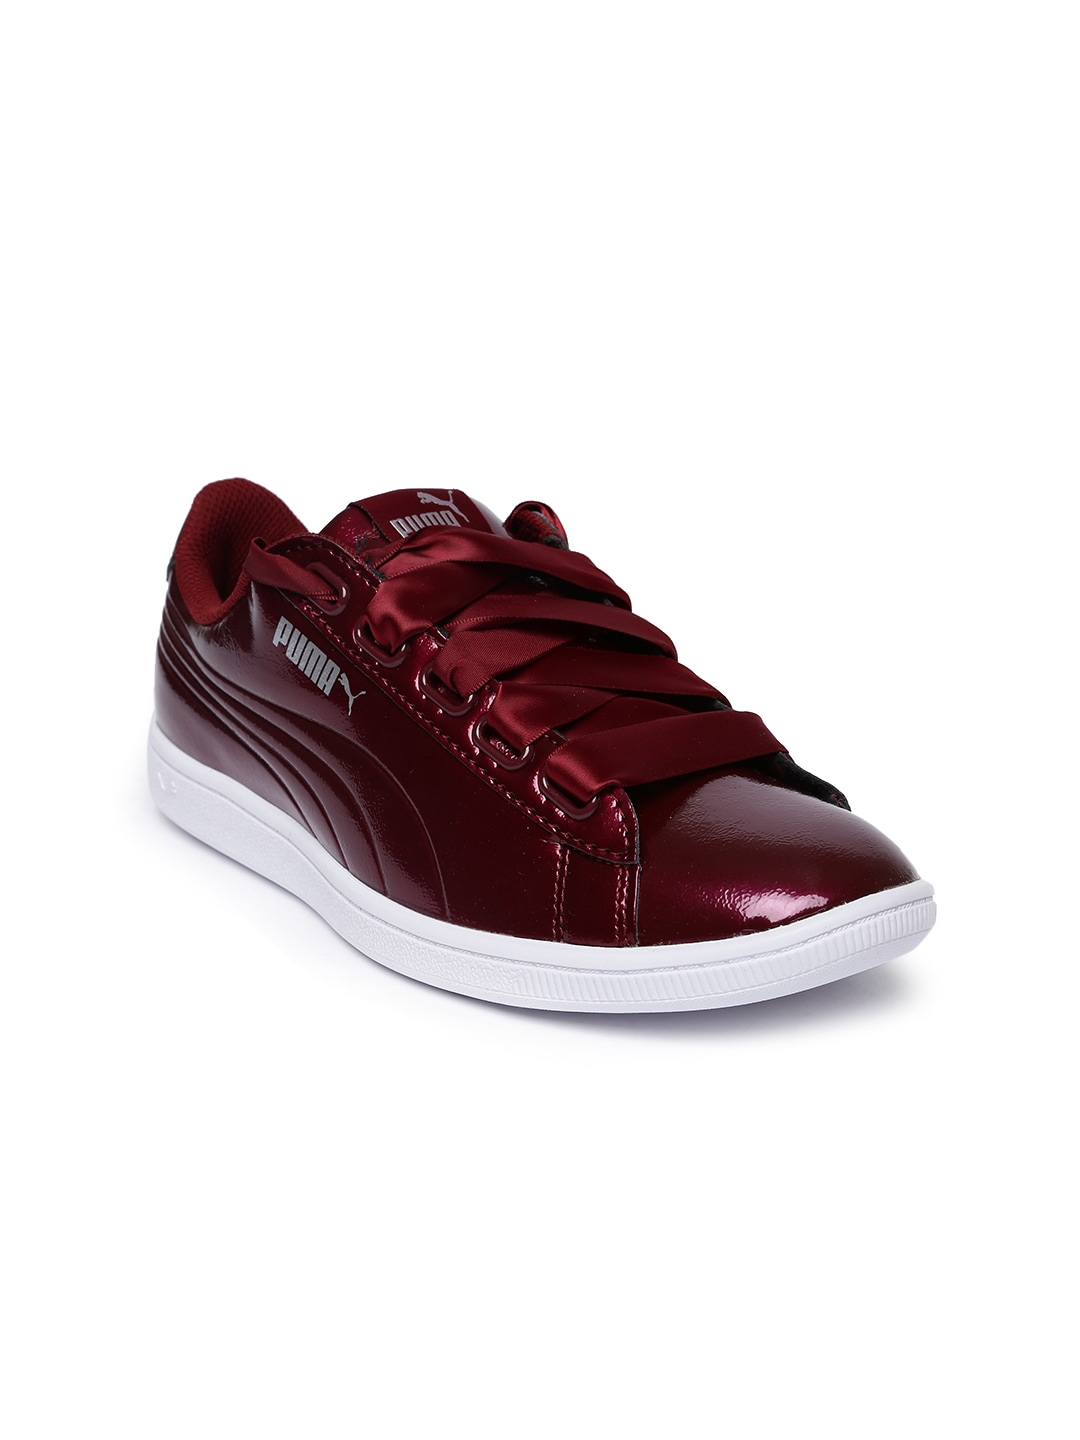 Puma Shoes - Buy Puma Shoes for Men   Women Online in India f95c74696